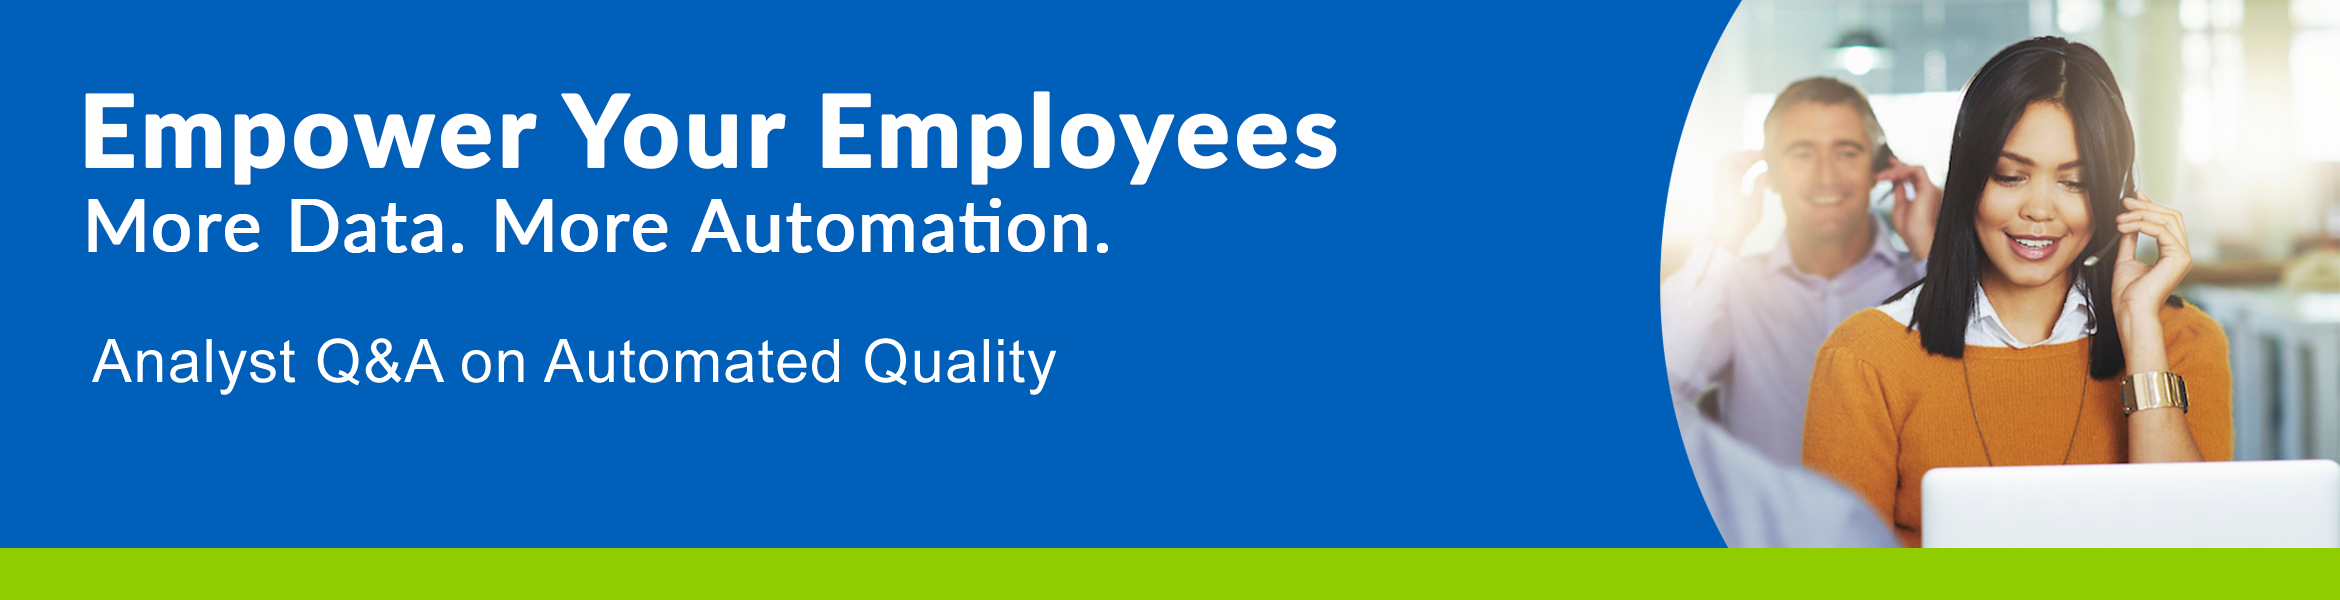 Verint | Empower Your Employees